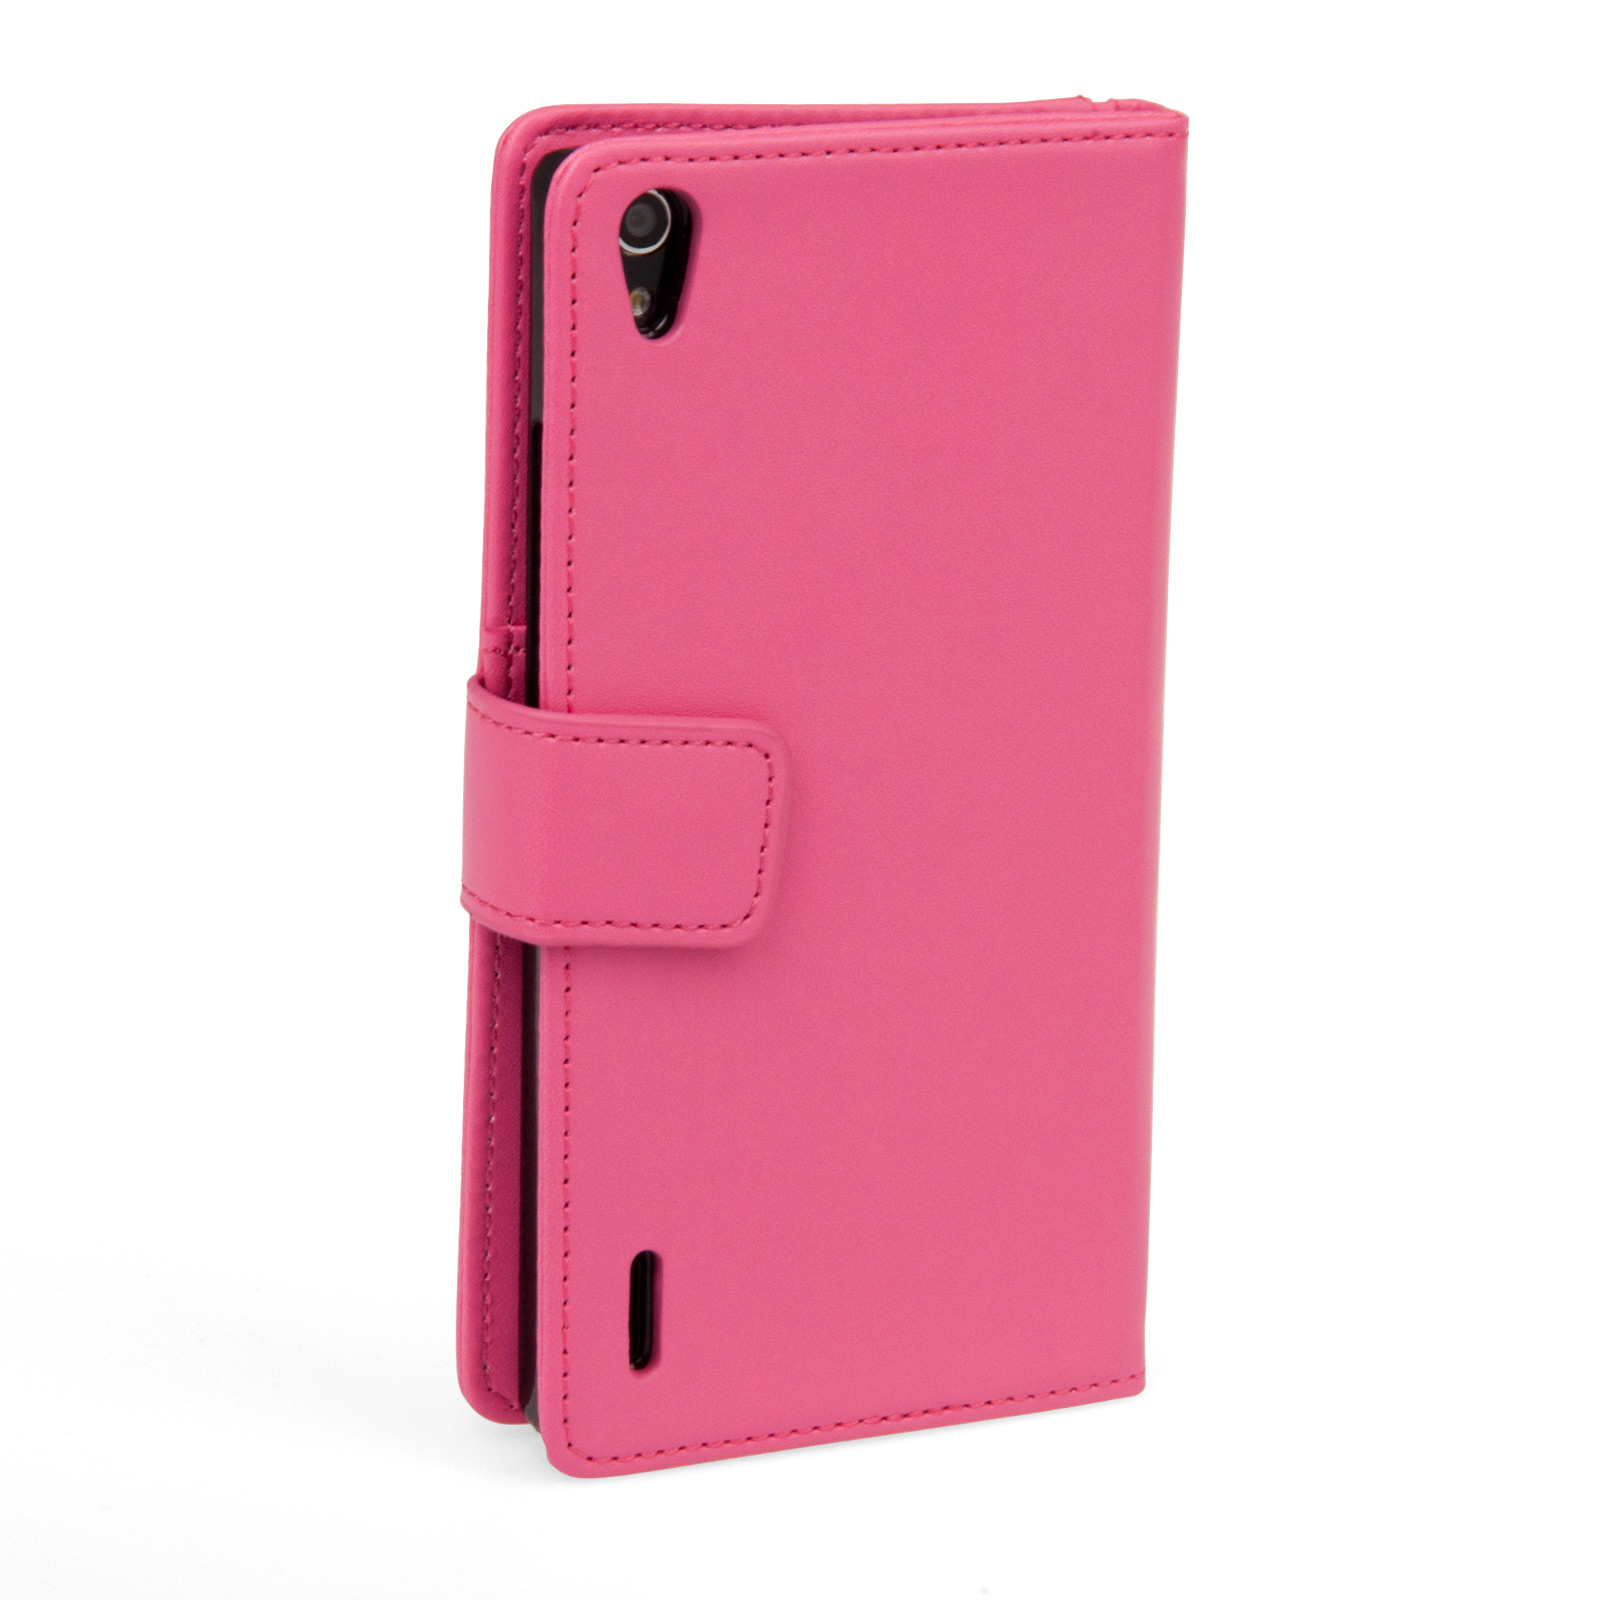 YouSave Huawei Ascend P7 Leather-Effect Wallet Case - Hot Pink